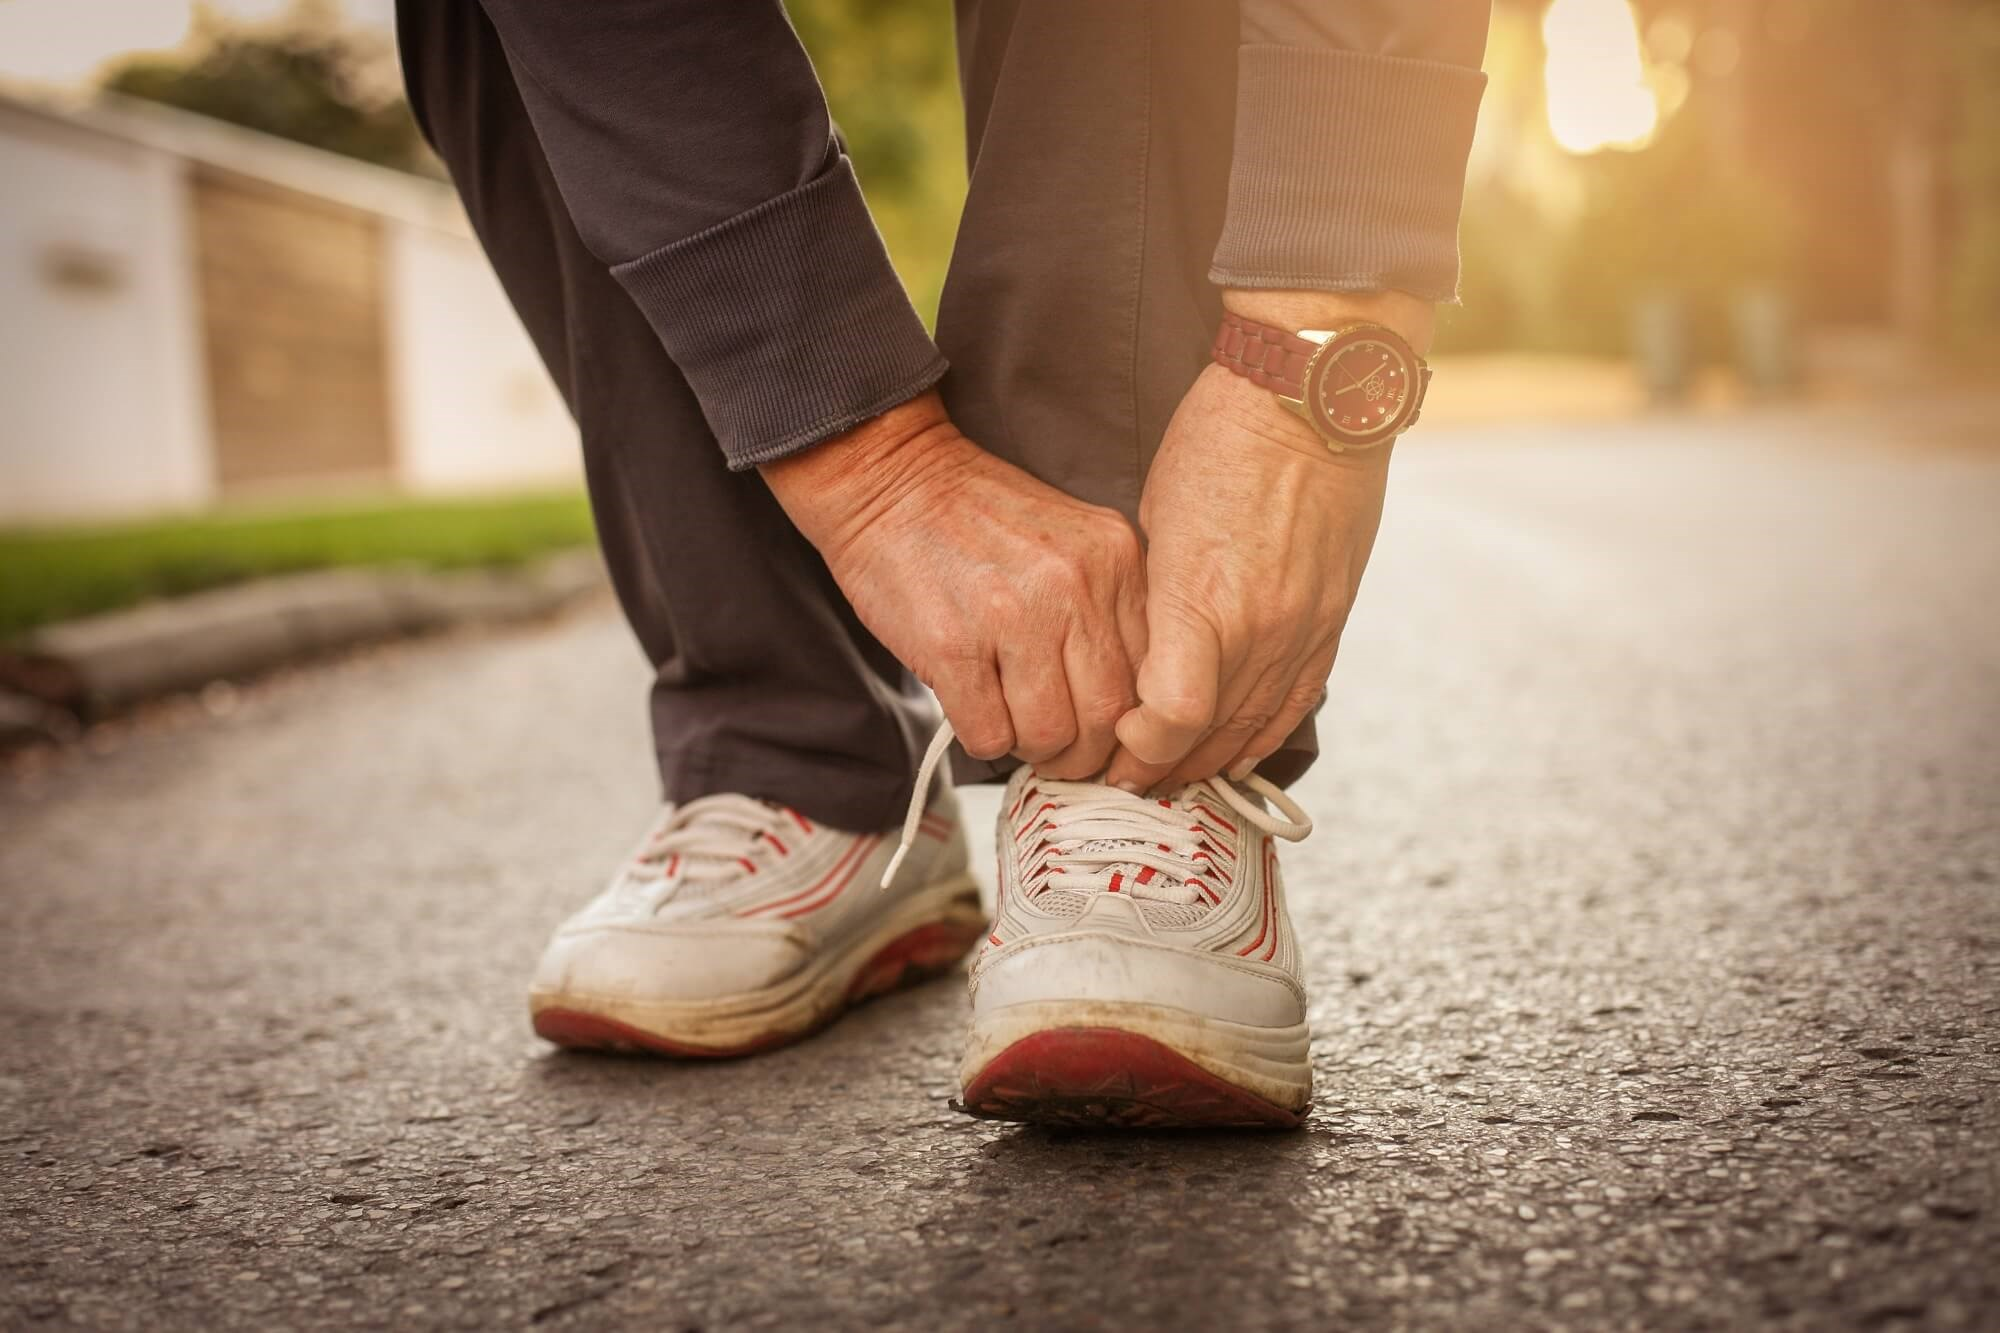 Investigators conducted a meta-analysis study of more than half a million participants to examine the association between physical activity and development of Parkinson disease in men.